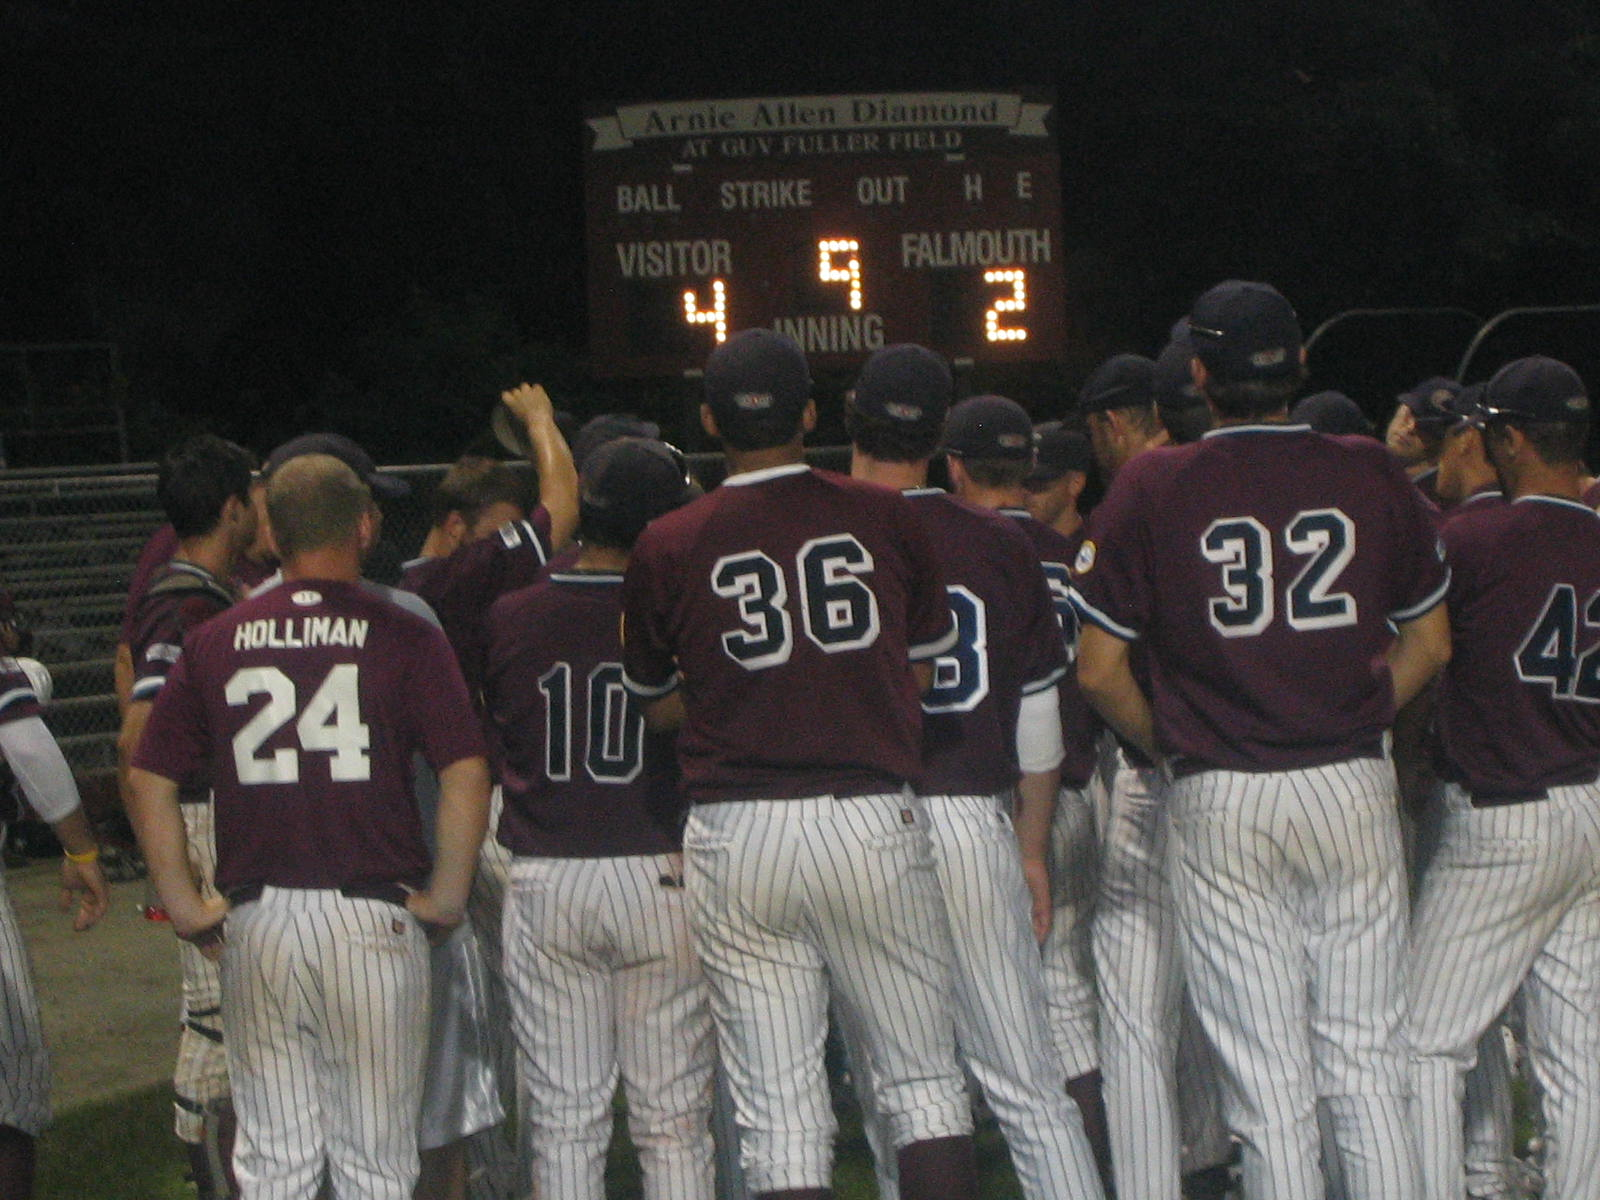 Cotuit defeated Falmouth last night to move within a single point of first place. Hyannis also looms one point behind first.